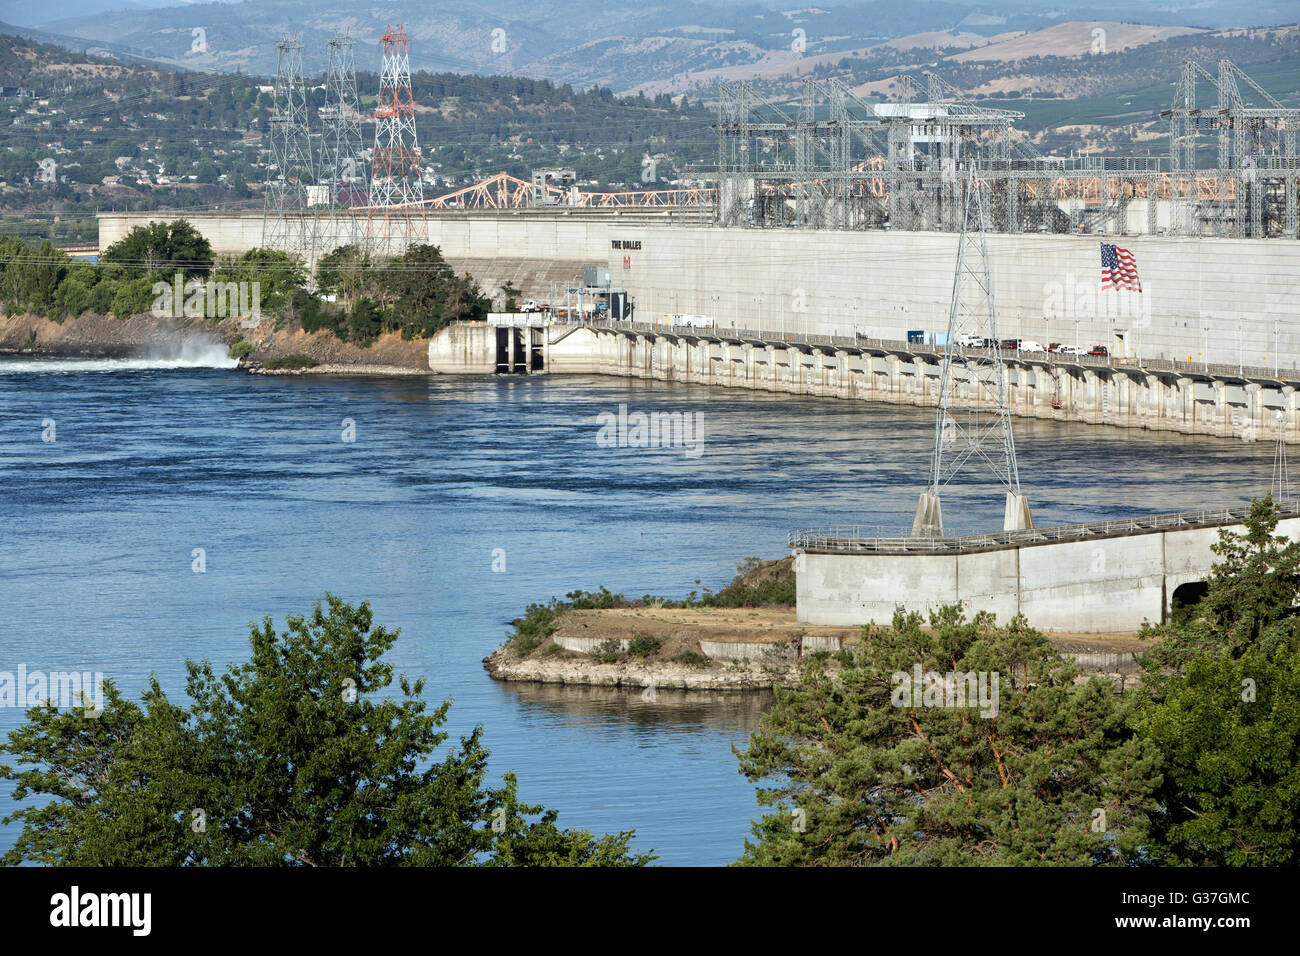 The Dalles Dam, Columbia River Gorge. - Stock Image